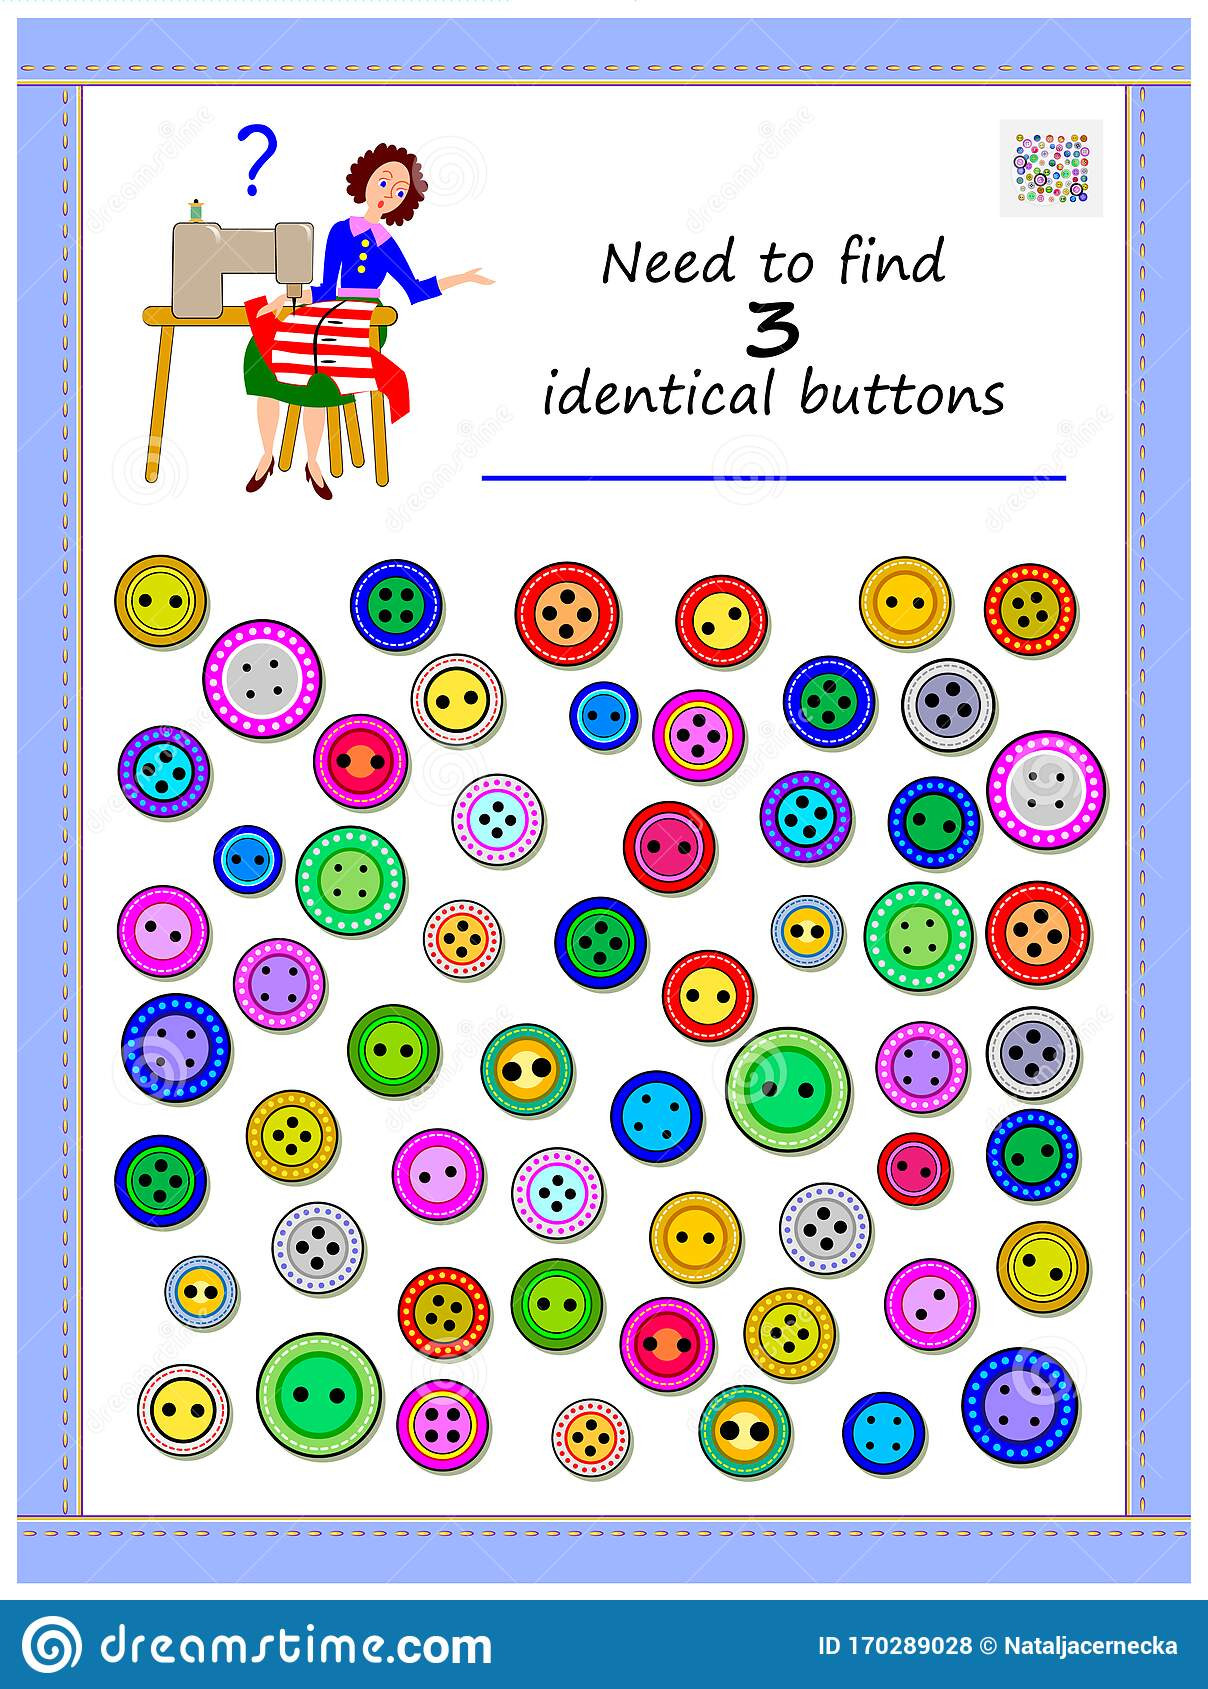 Brain Teaser Printable Worksheets Logic Puzzle Game for Children and Adults Need to Find